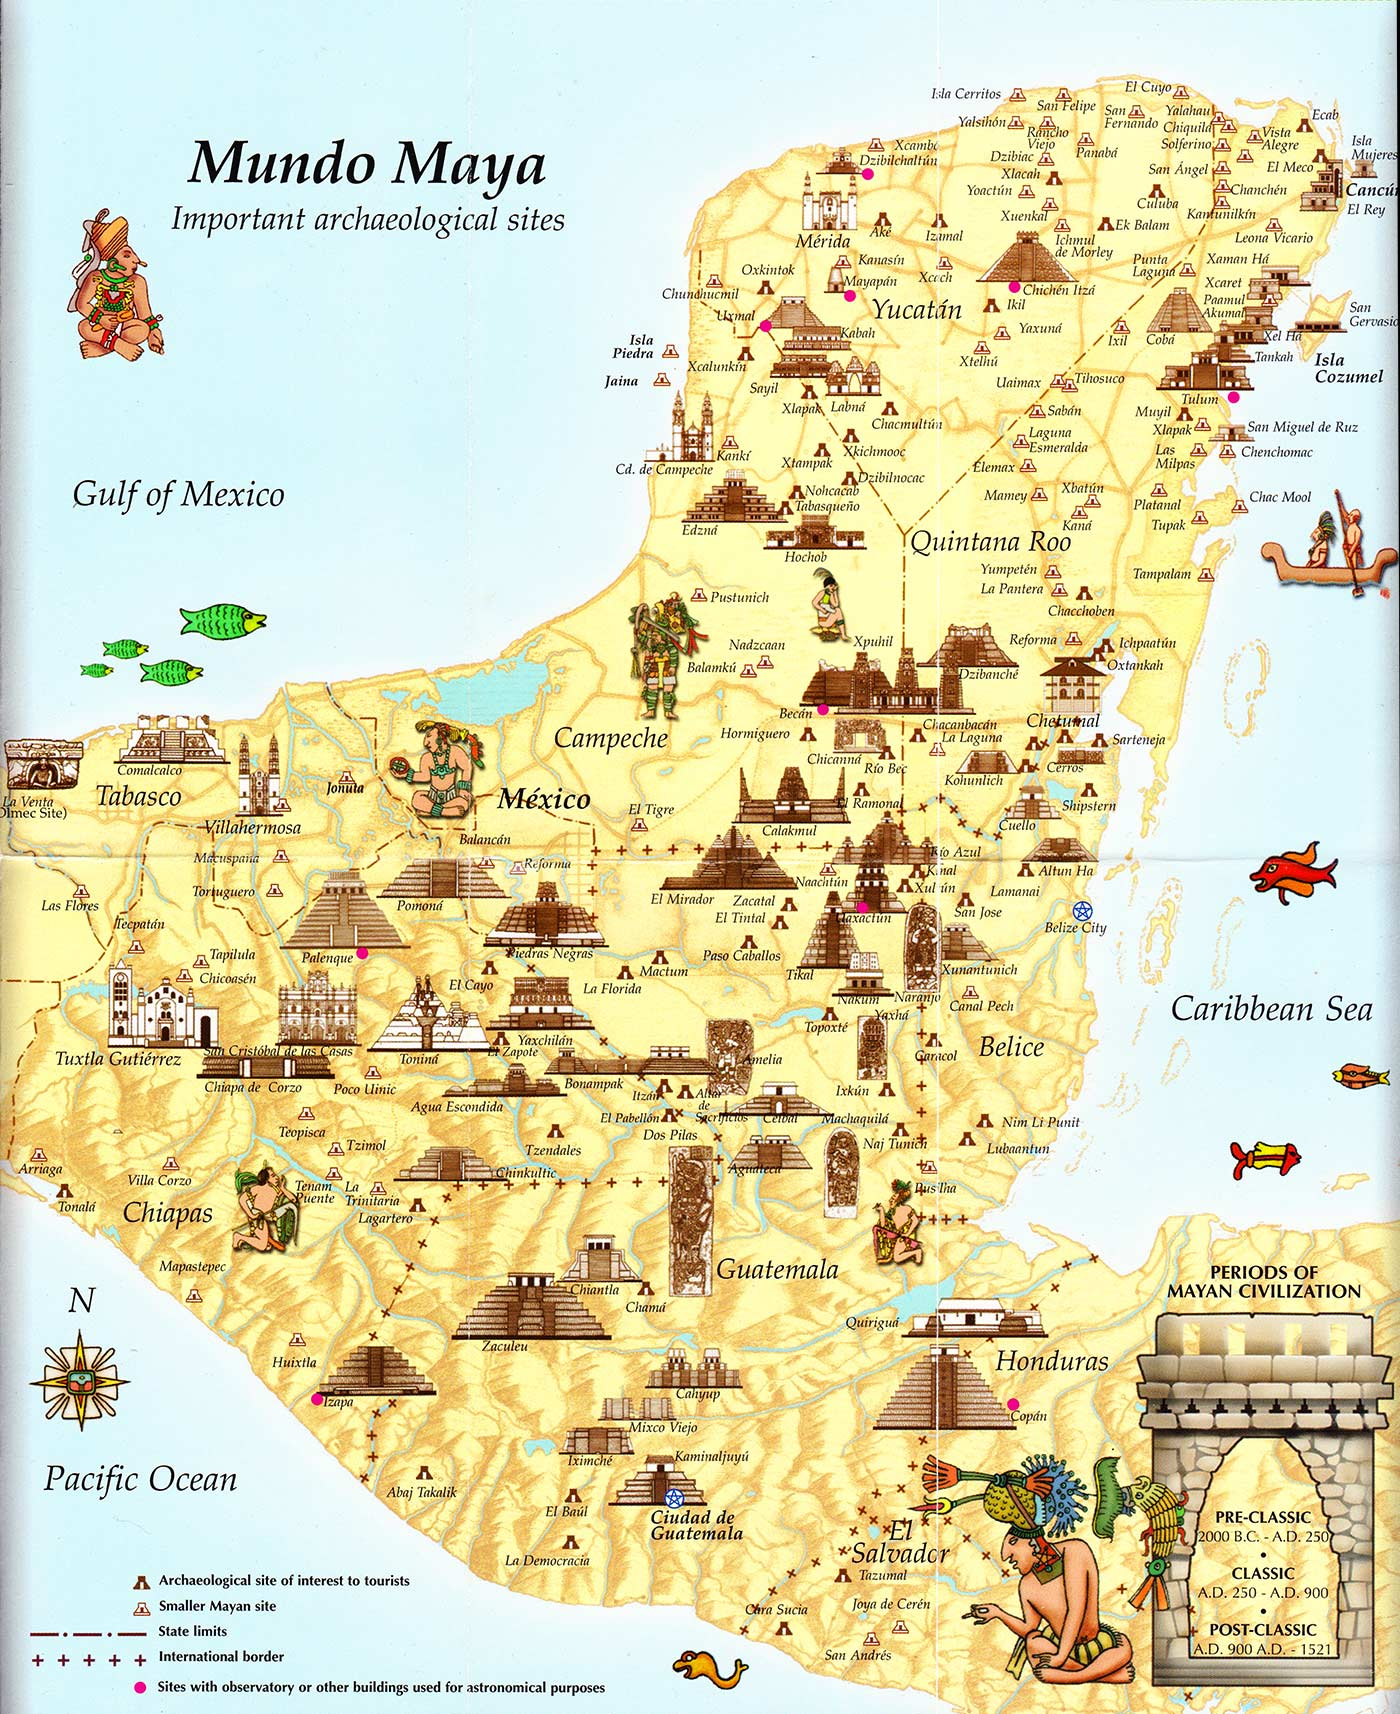 Top 10 maps showing world's oldest cities - Geospatial World Historical Maps Of Inca Empire on map of rapa iti, map of chavin empire, map of umayyad caliphate empire, aztec empire, map of mali empire, map of the moche empire, map of toltec empire, map of khmer empire, map of alexander the greats empire, map of danish empire, map of mayan empire, map of north german confederation, map of hindu empire, map of cuzco, map of siege of vienna, map of tenochtitlan, map of celtic empire, map of mesopotamia, map of south america, map of italian empire,